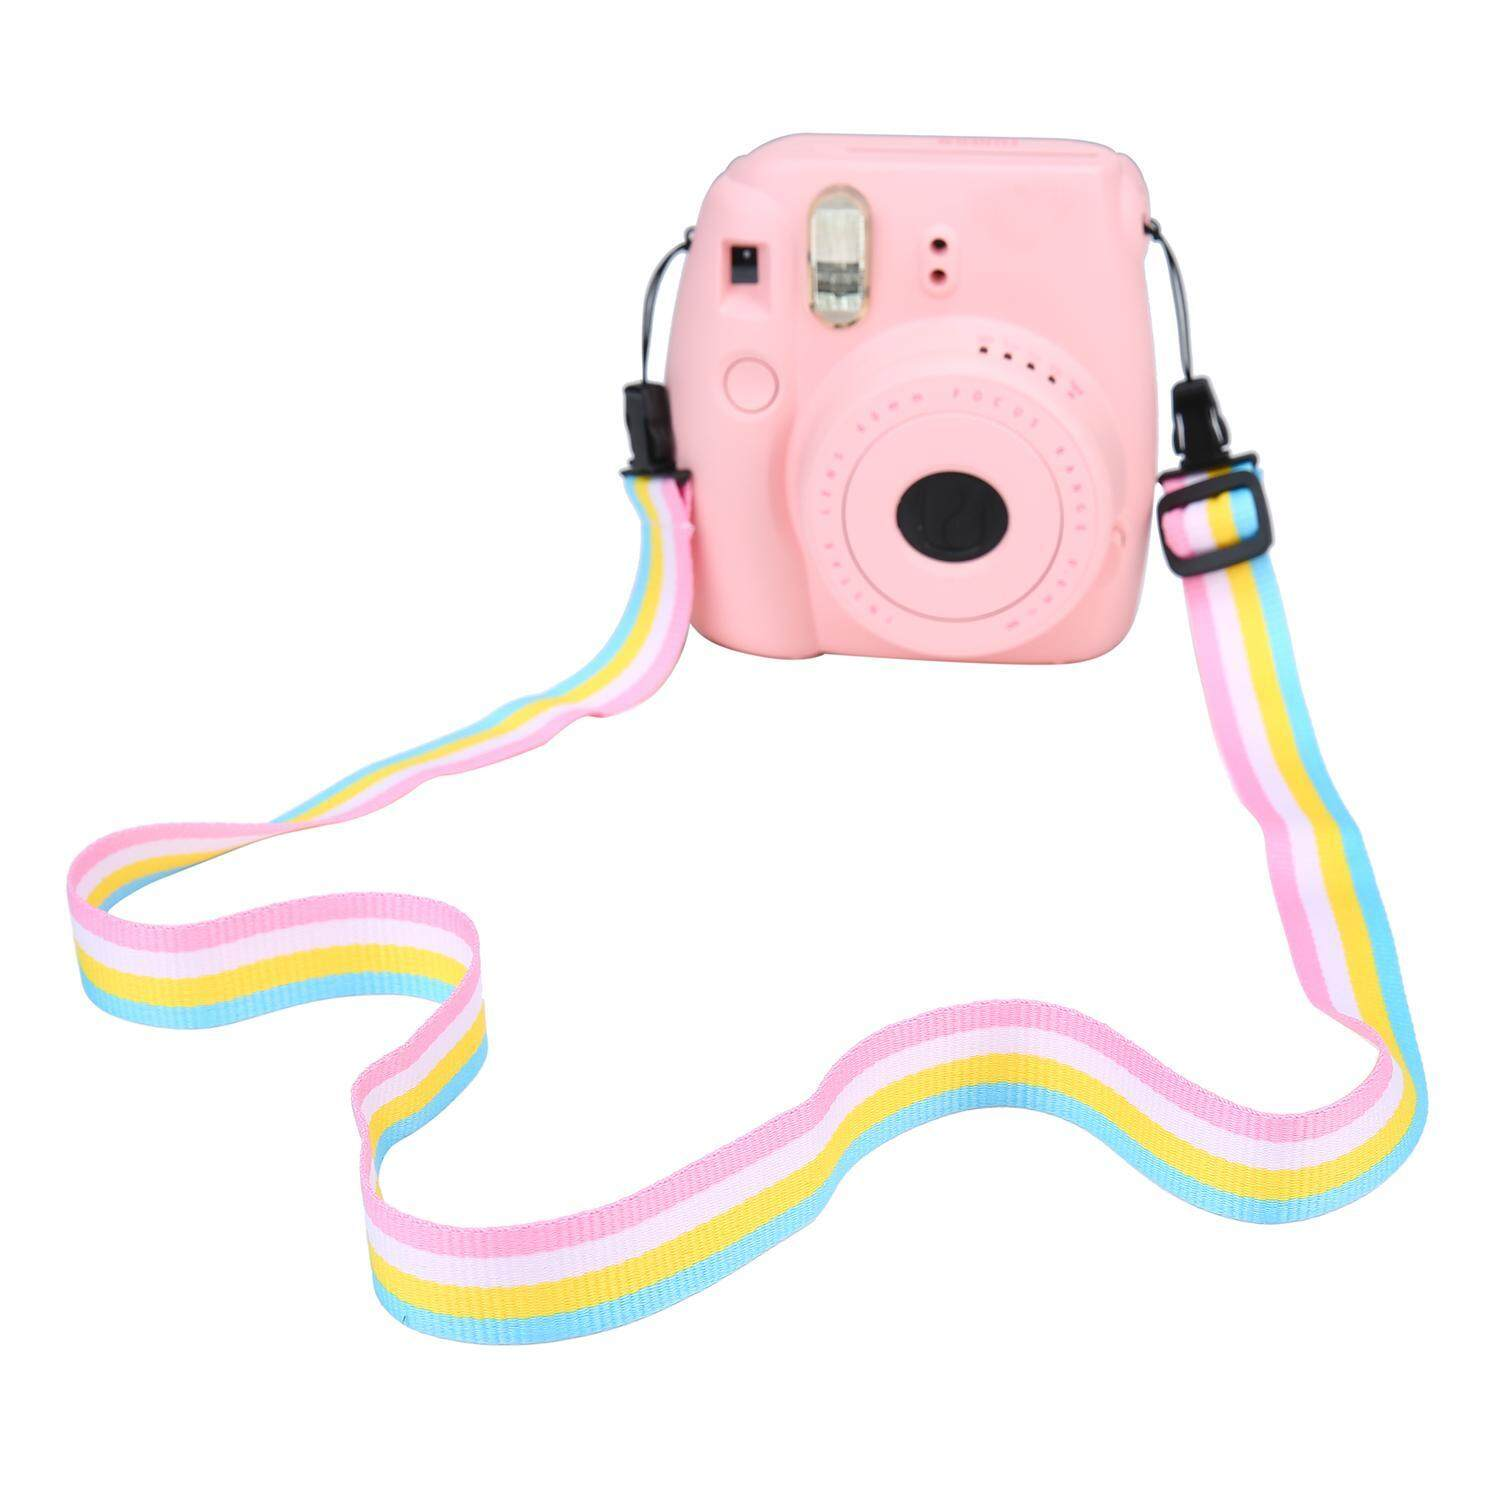 BESTDON Adjustable Camera Neck Shoulder Strap Belt For Digital Camera / Fujifilm Instax Camera Mini 8 / Mini 8+ / Mini 7s / Mini 25 / Mini 26 /Mini 50s / Mini 90, Pink